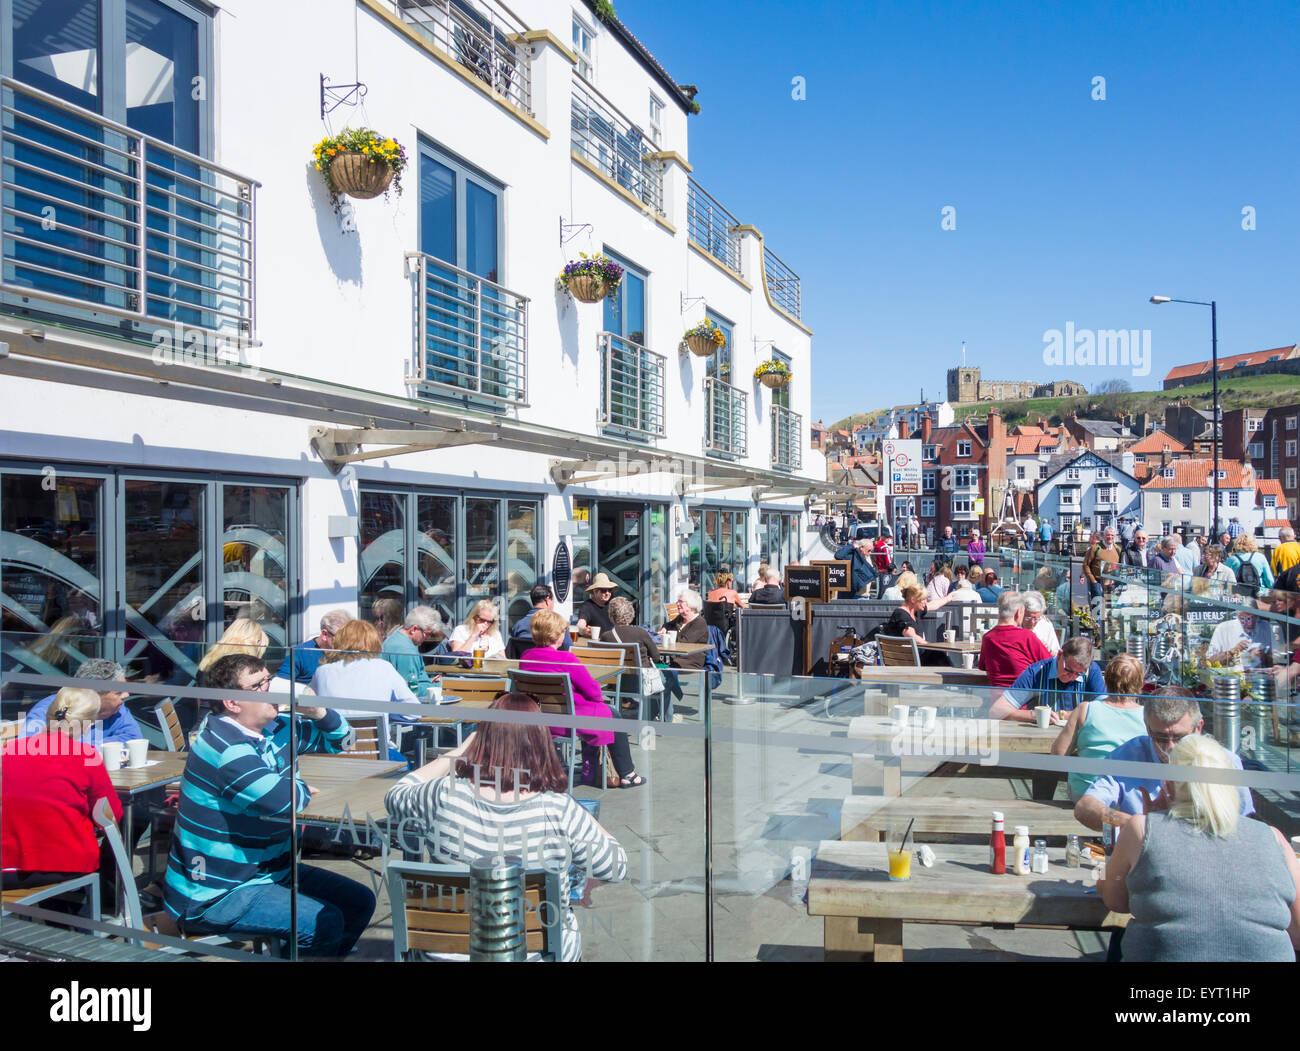 A J D Wetherspoon`s The Angel Hotel in Whitby, North Yorkshire, England, UK - Stock Image